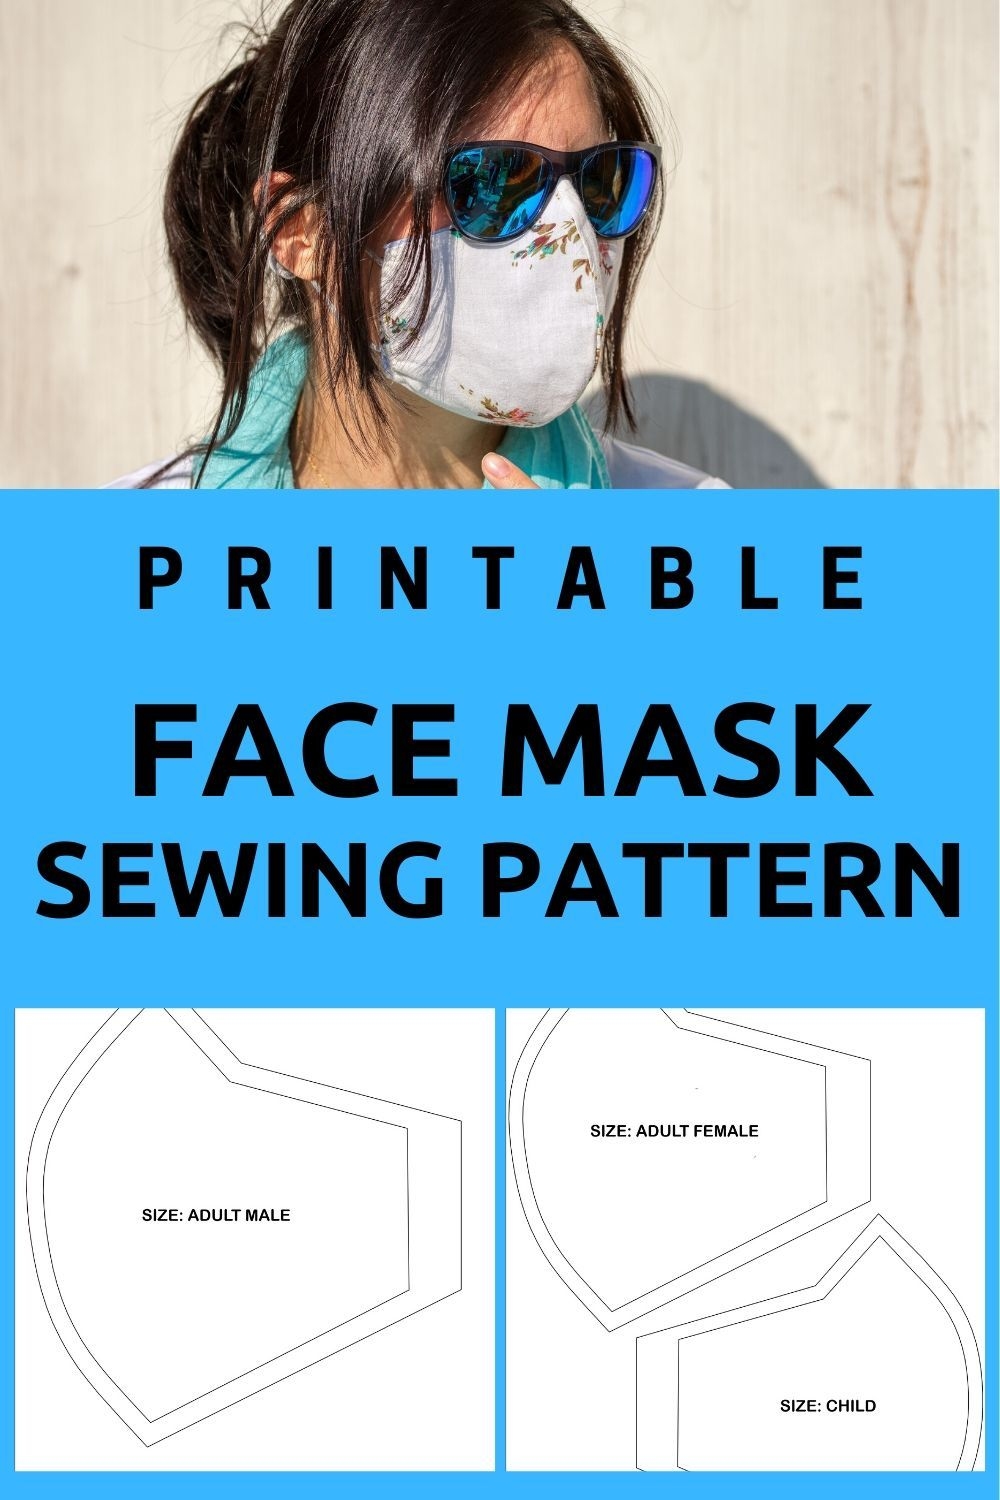 Photo of Face Mask Sewing Pattern